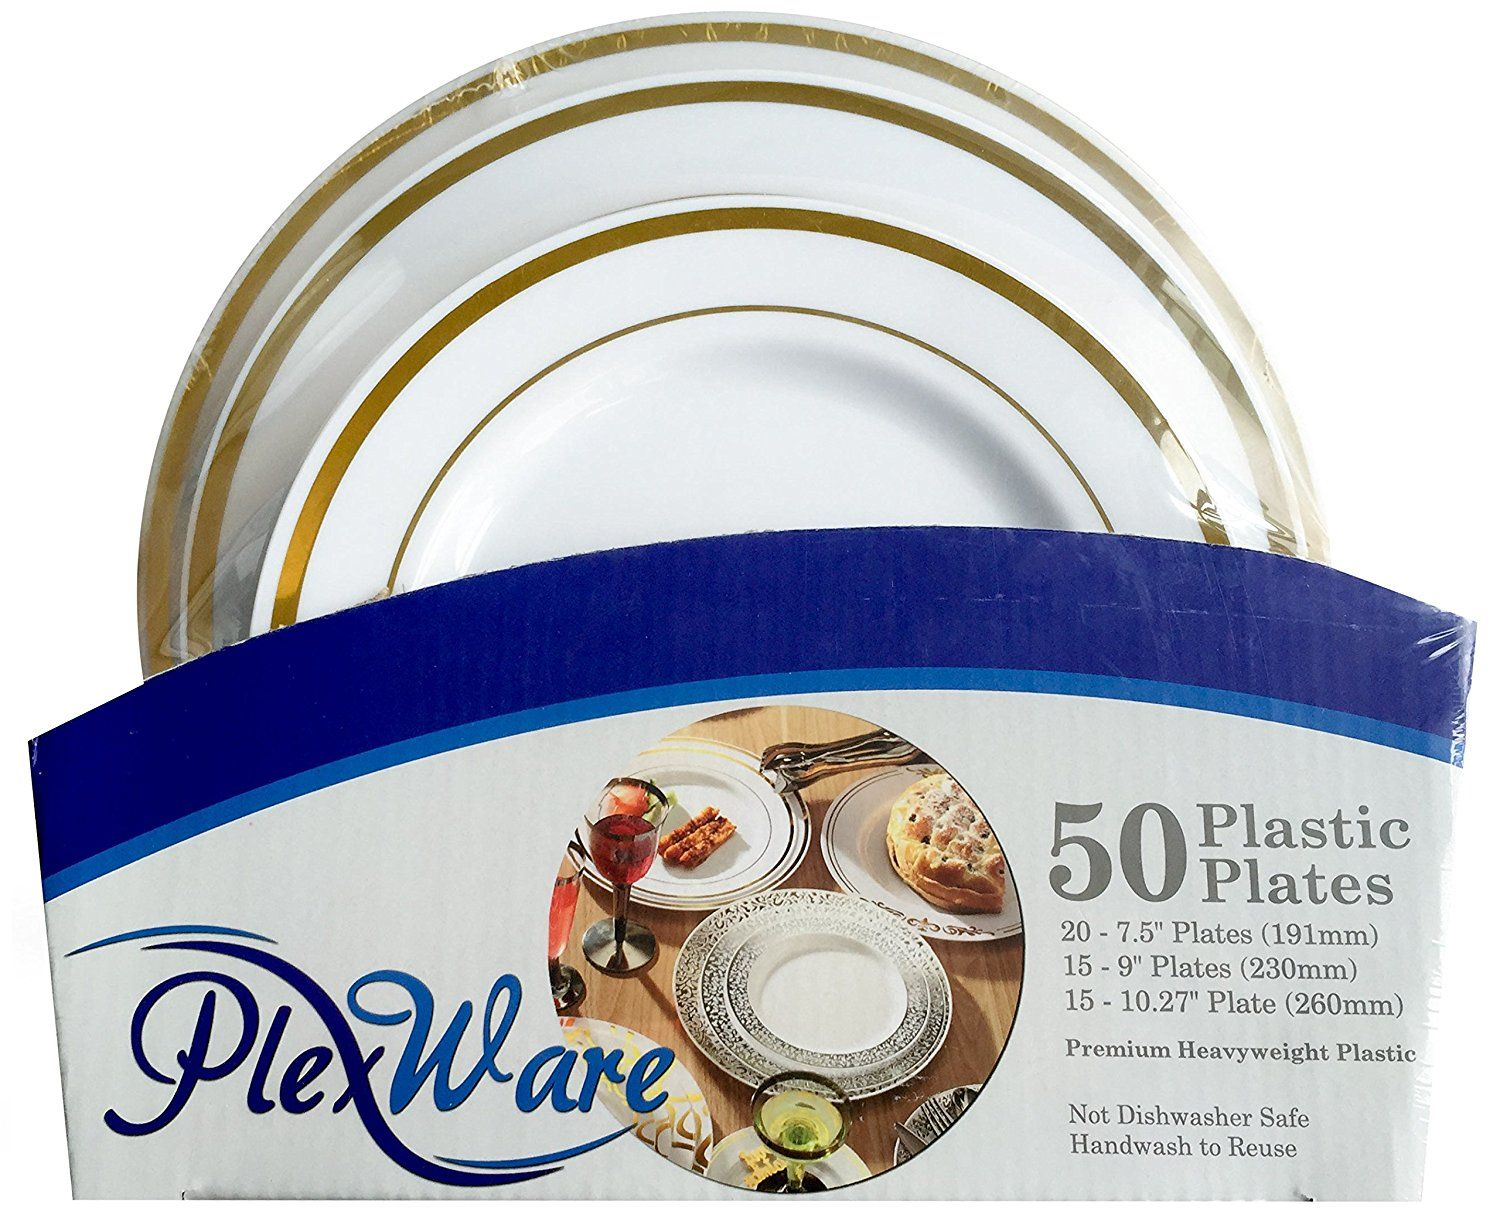 Amazon.com: Plexware Golden Rim Plastic Plates 50 Piece Set (20-7.5 ...